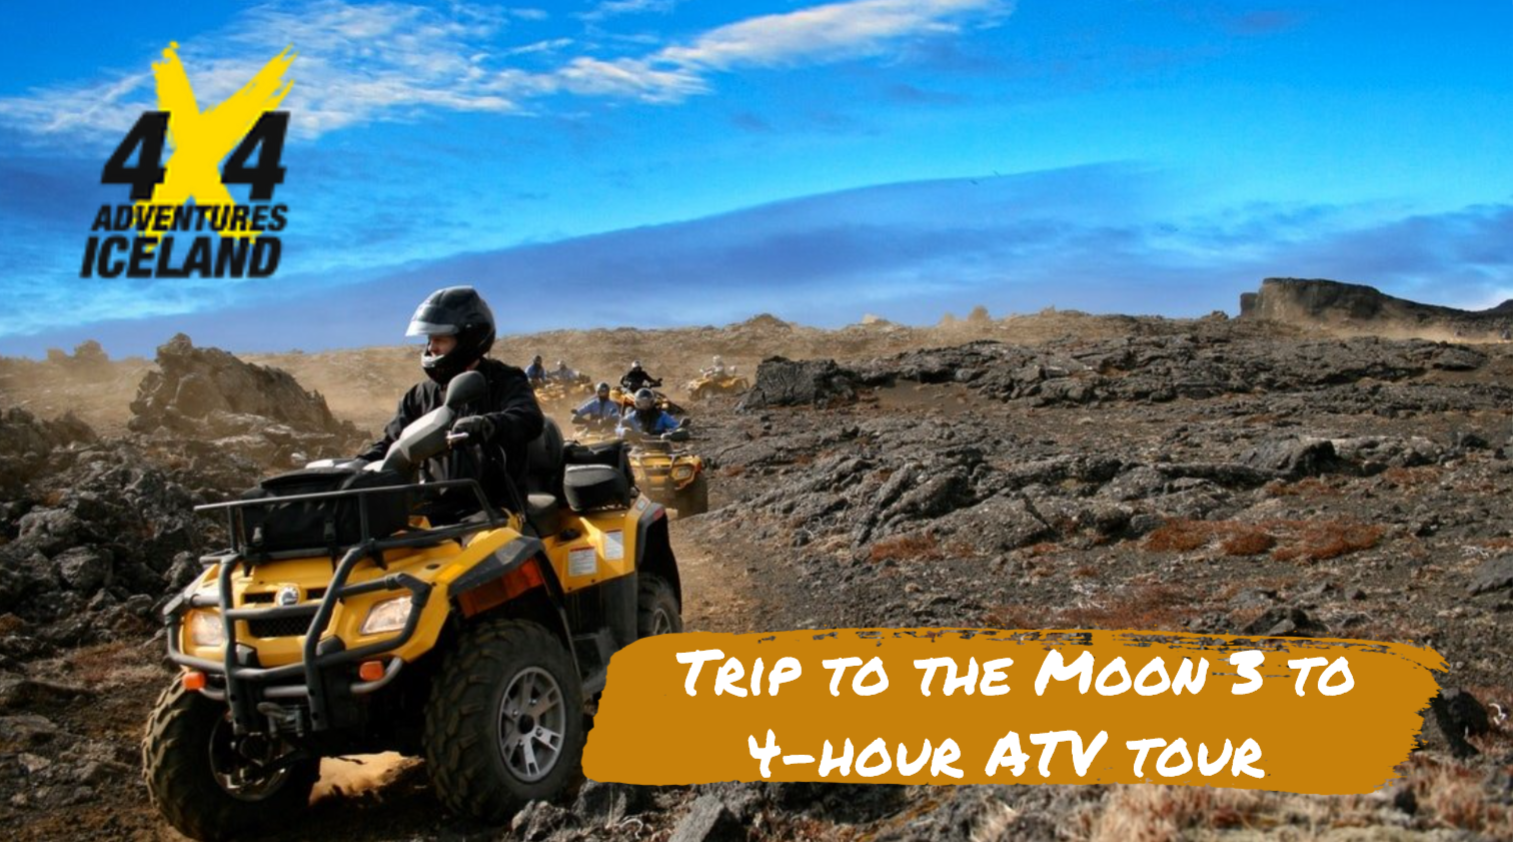 Trip to the Moon 3 to 4-hour ATV tour